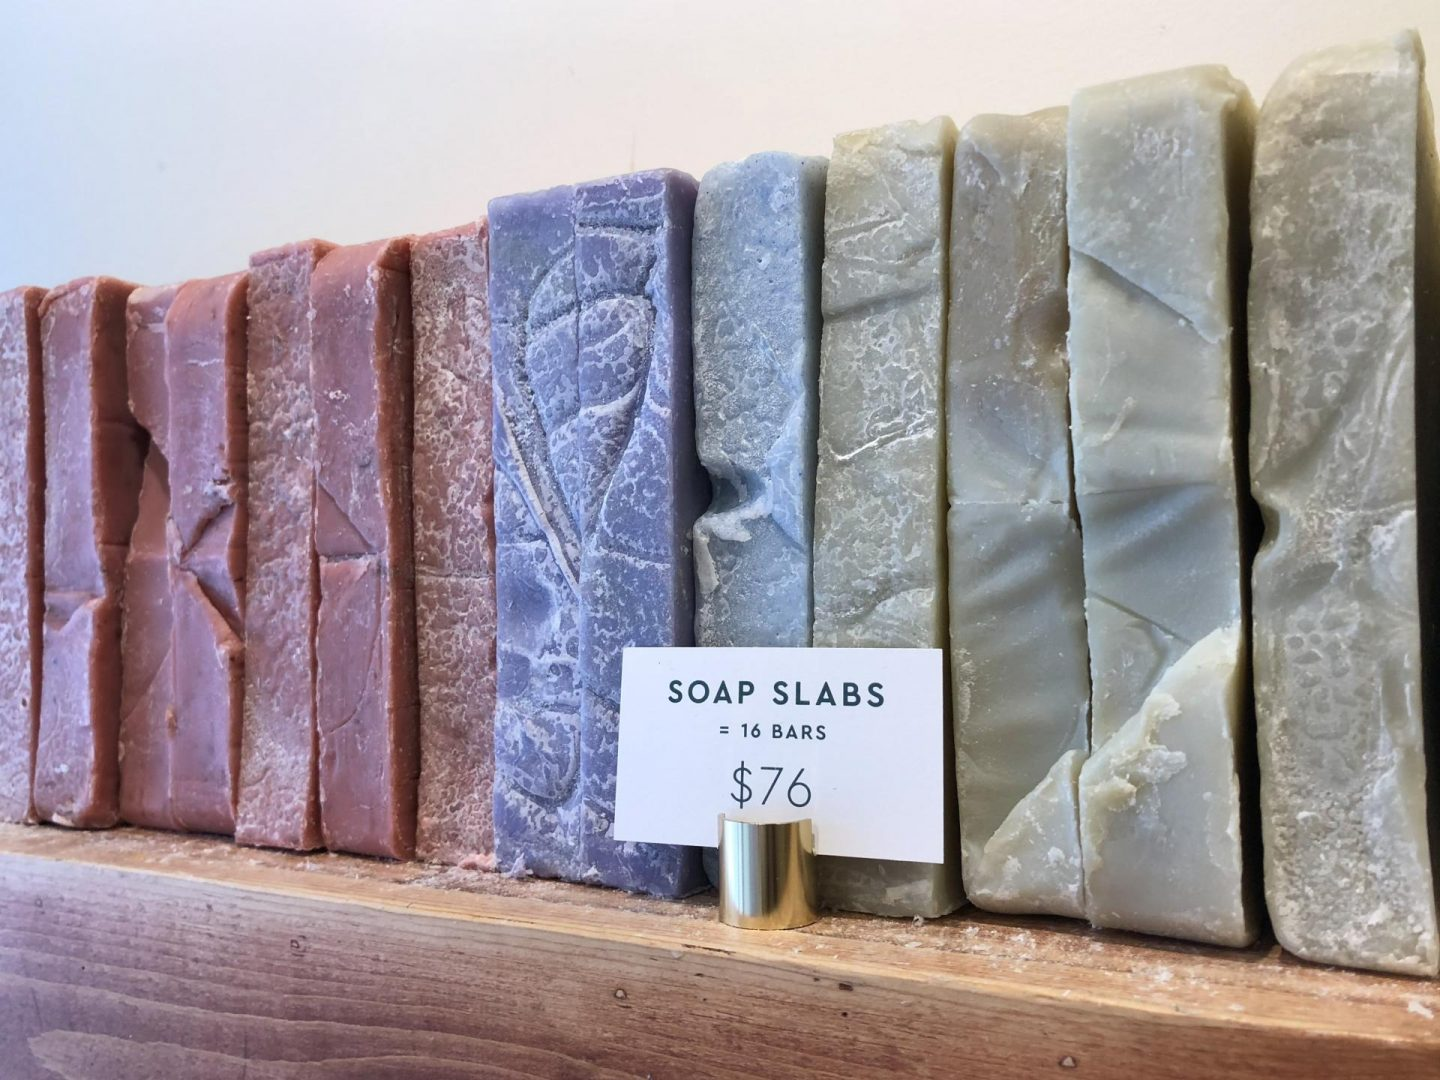 Handmade soap at Rocky Mountain Soap Company.